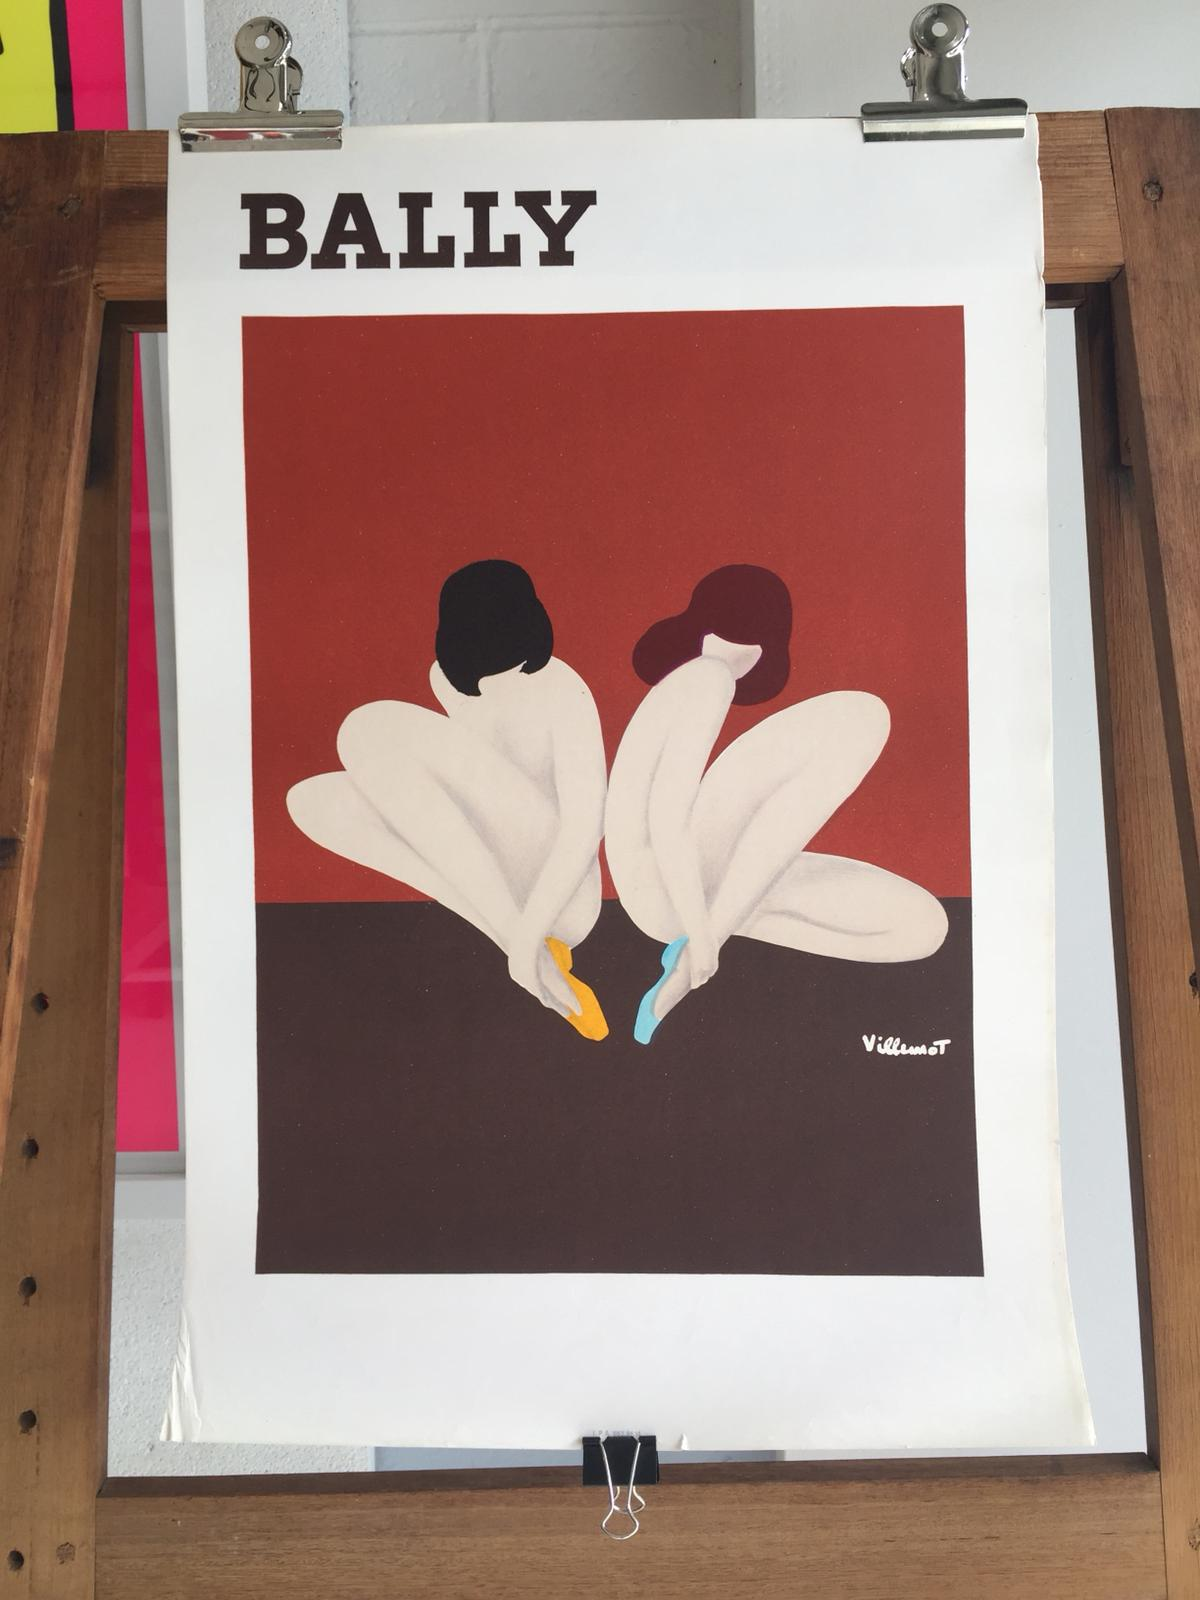 Bally Lotus by Villemot (Small)